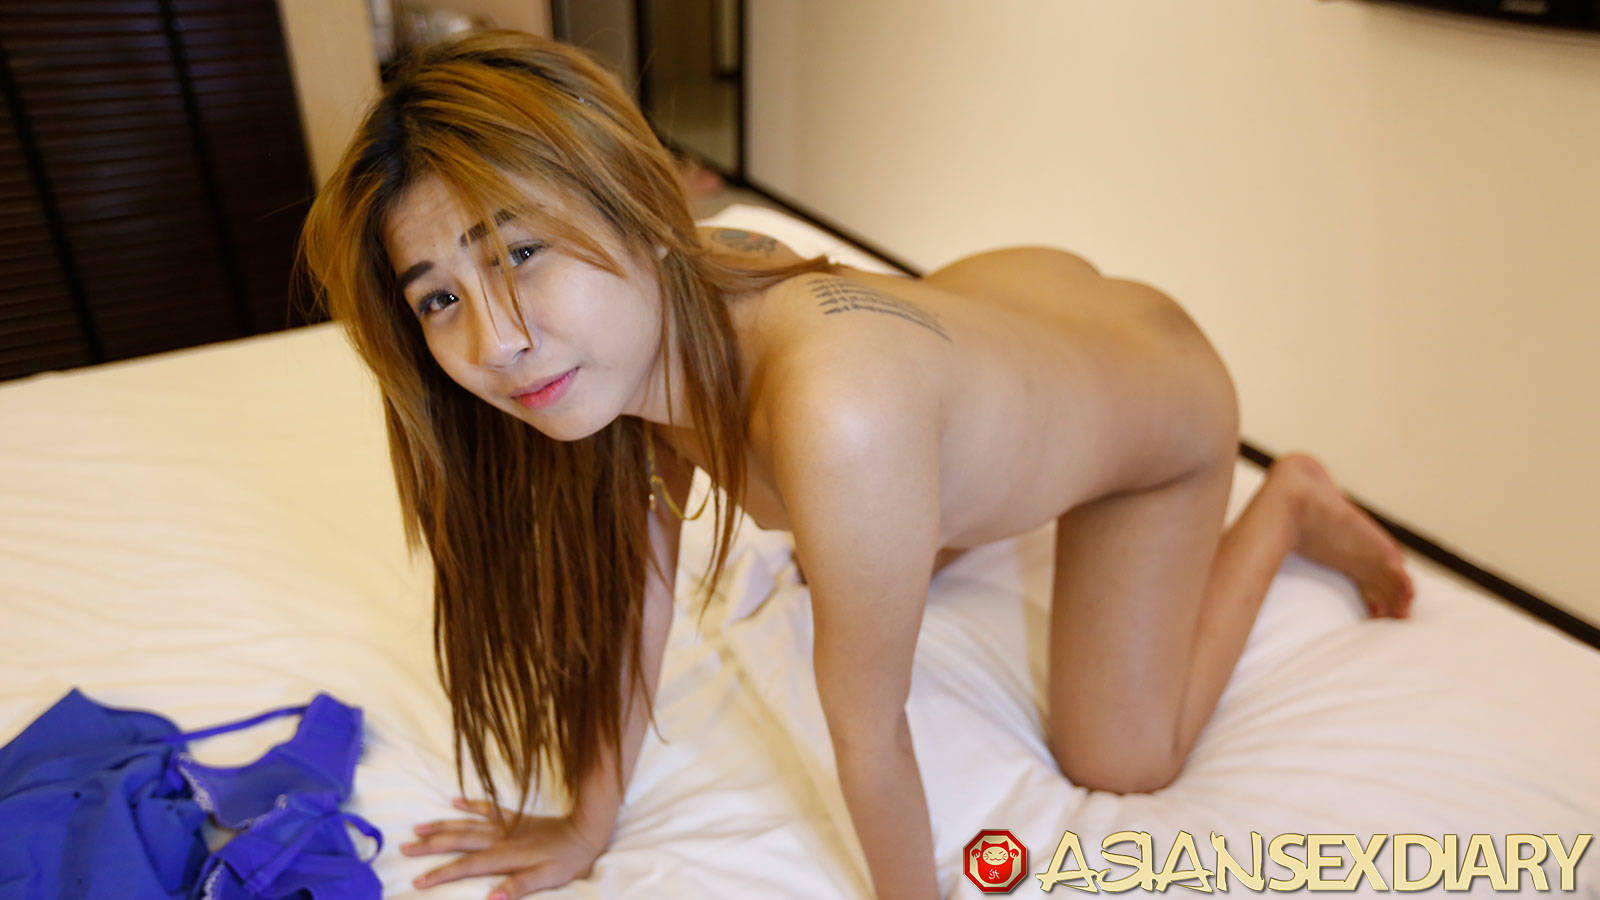 Japanese Woman With Big Boobs